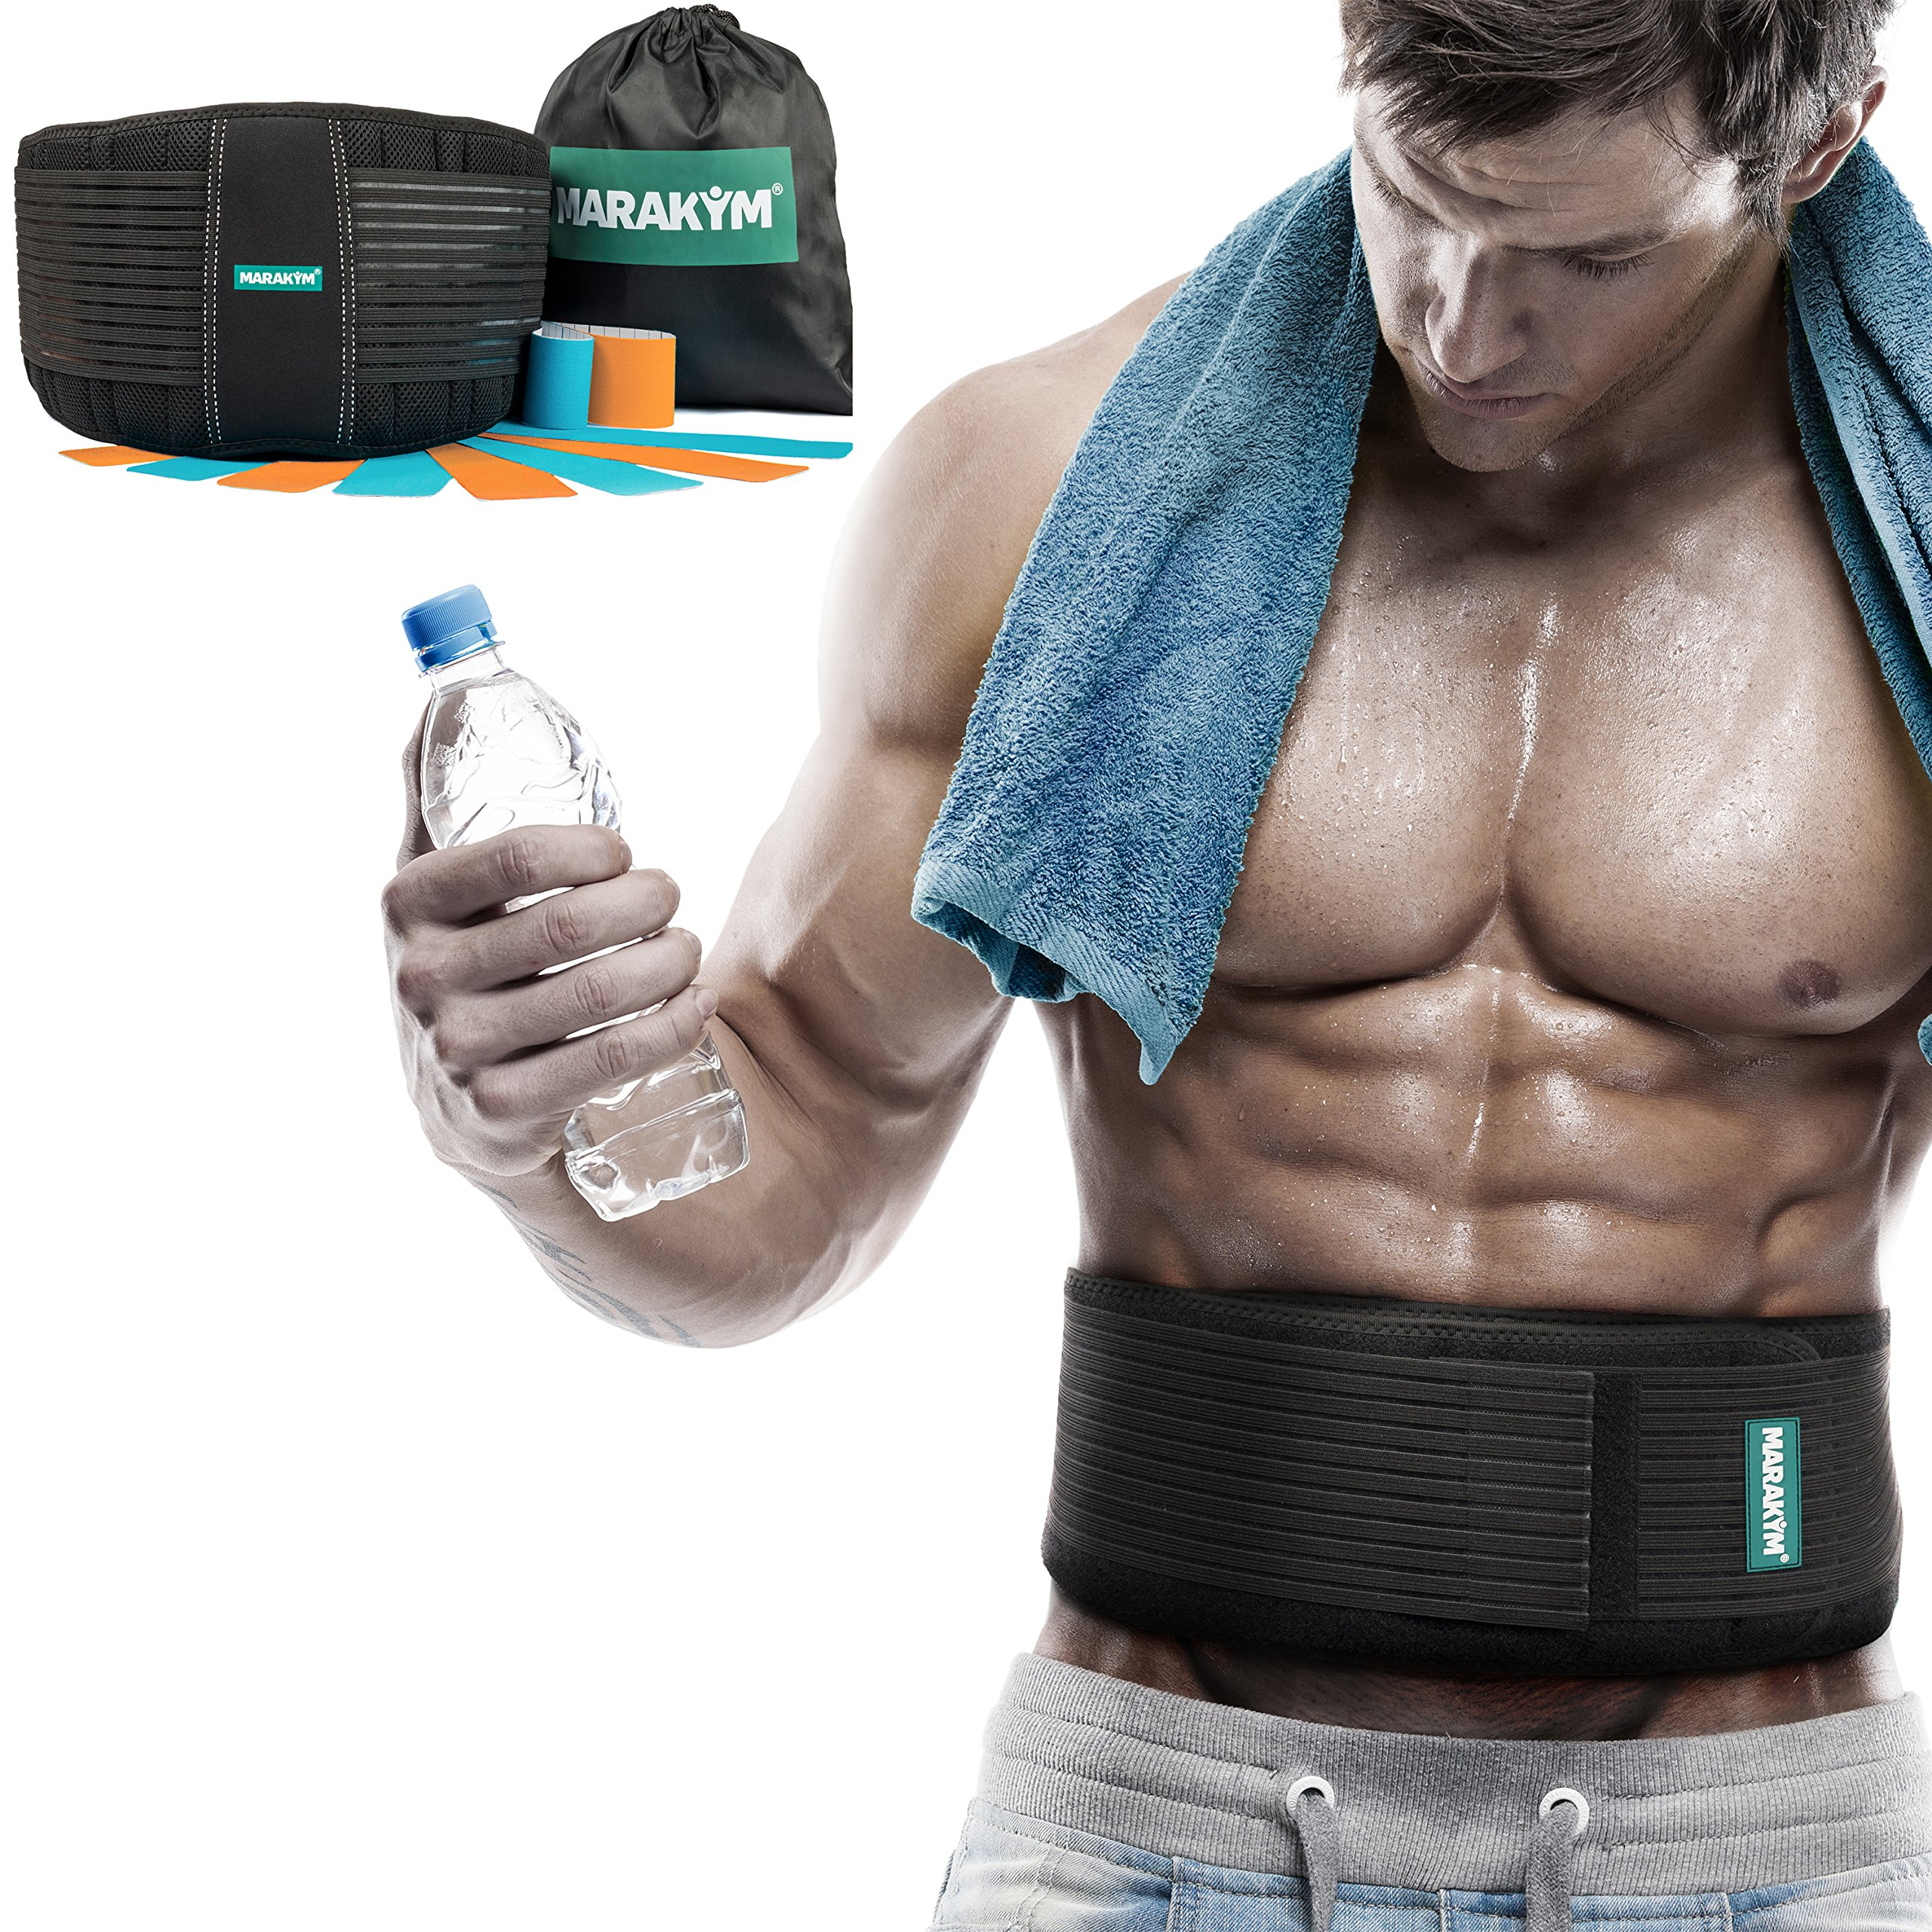 Marakym Back Brace-Lower Back Support Belt with Dual Adjustable Straps and Breathable Mesh Panels for Women and Men PLUS Kinesiology Tape and Carry Bag INCLUDED by (L/XL)